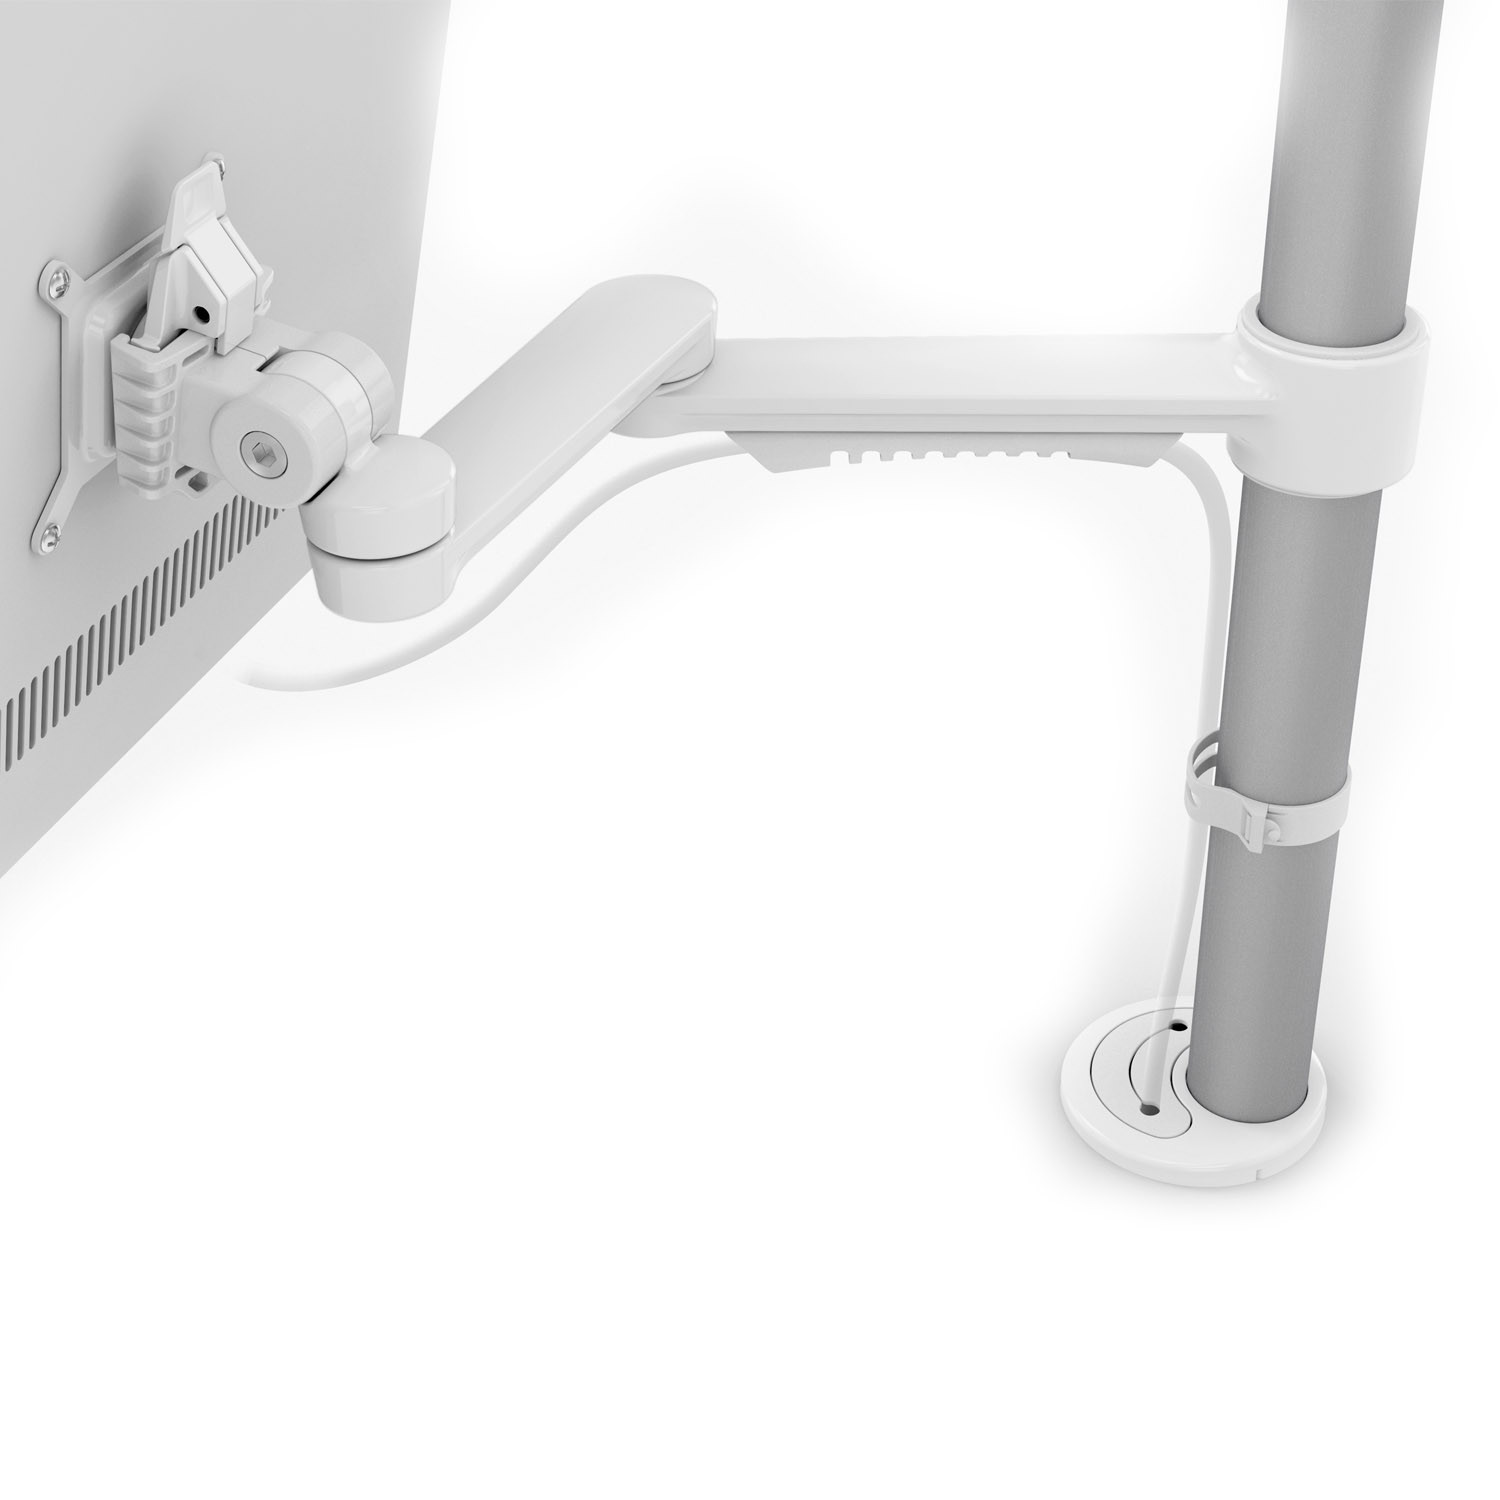 C.Me Flexible Monitor Arm